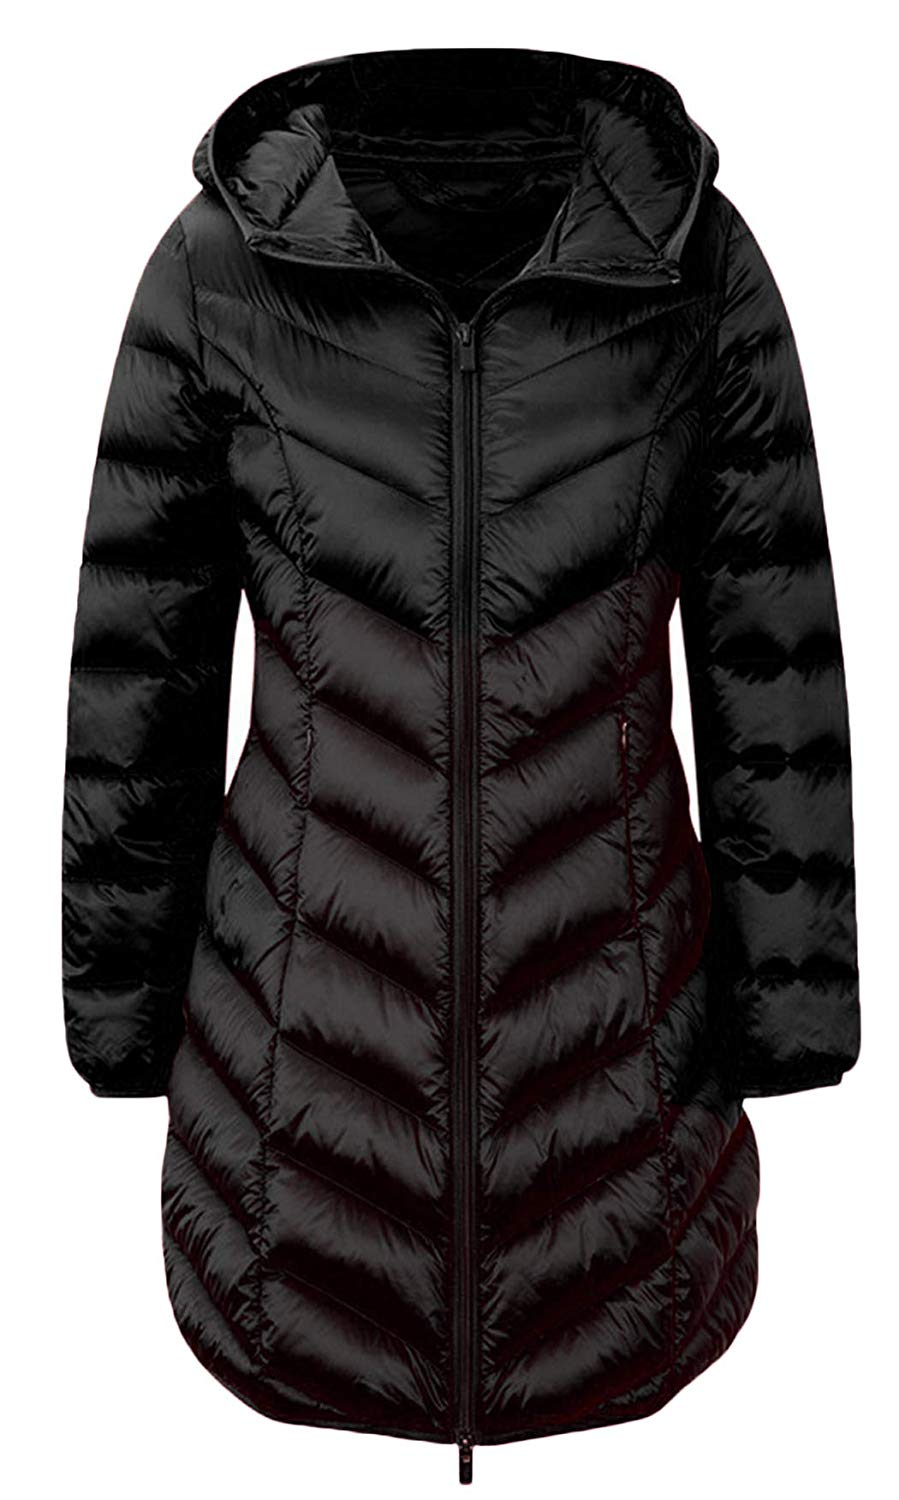 4c979ee6618 Get Quotations · PWYXSA Women s Lightweight Hooded Long Down Outerwear  Puffer Jacket Coat Windbreaker Outdoor Quilted Down Parka Jacket